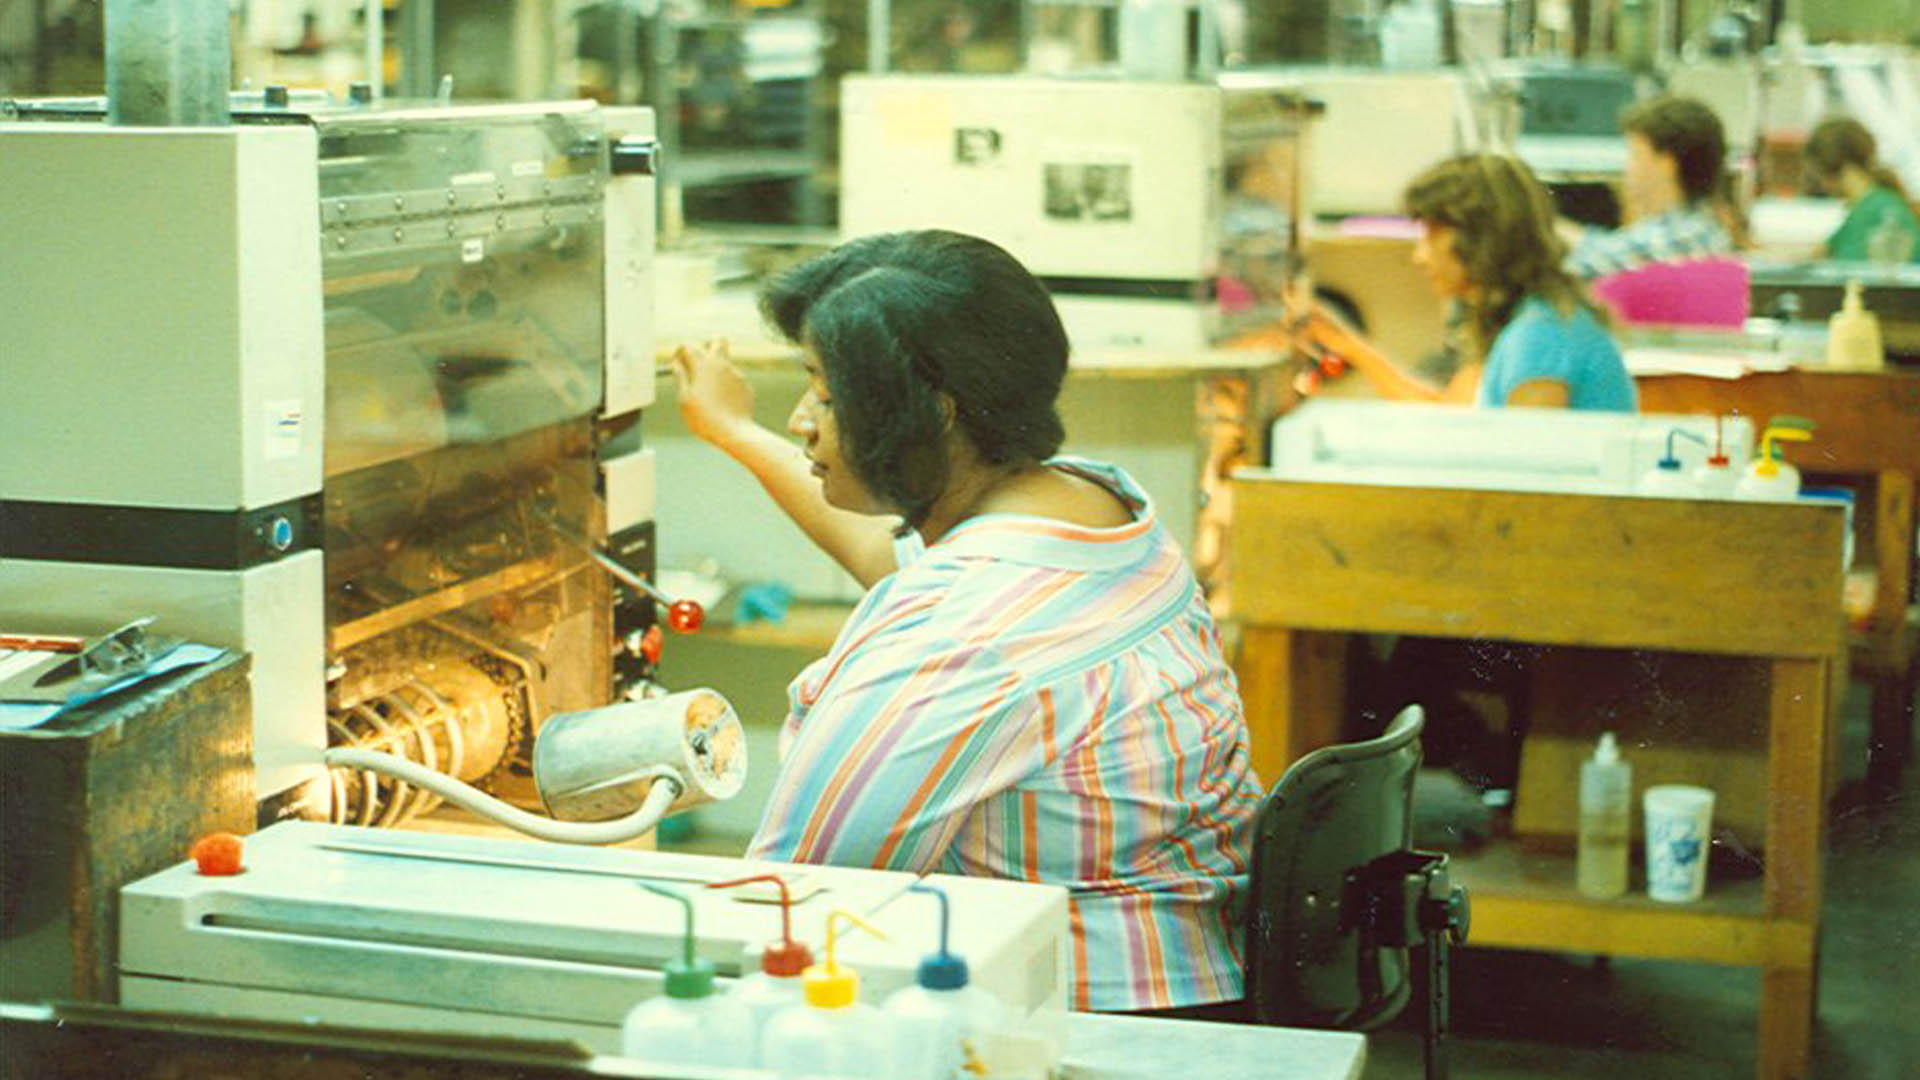 Dark haired woman wearing a colorful striped blouse sits and operates a boxy printing press with a line of other machines and operators stretching off to right in the background